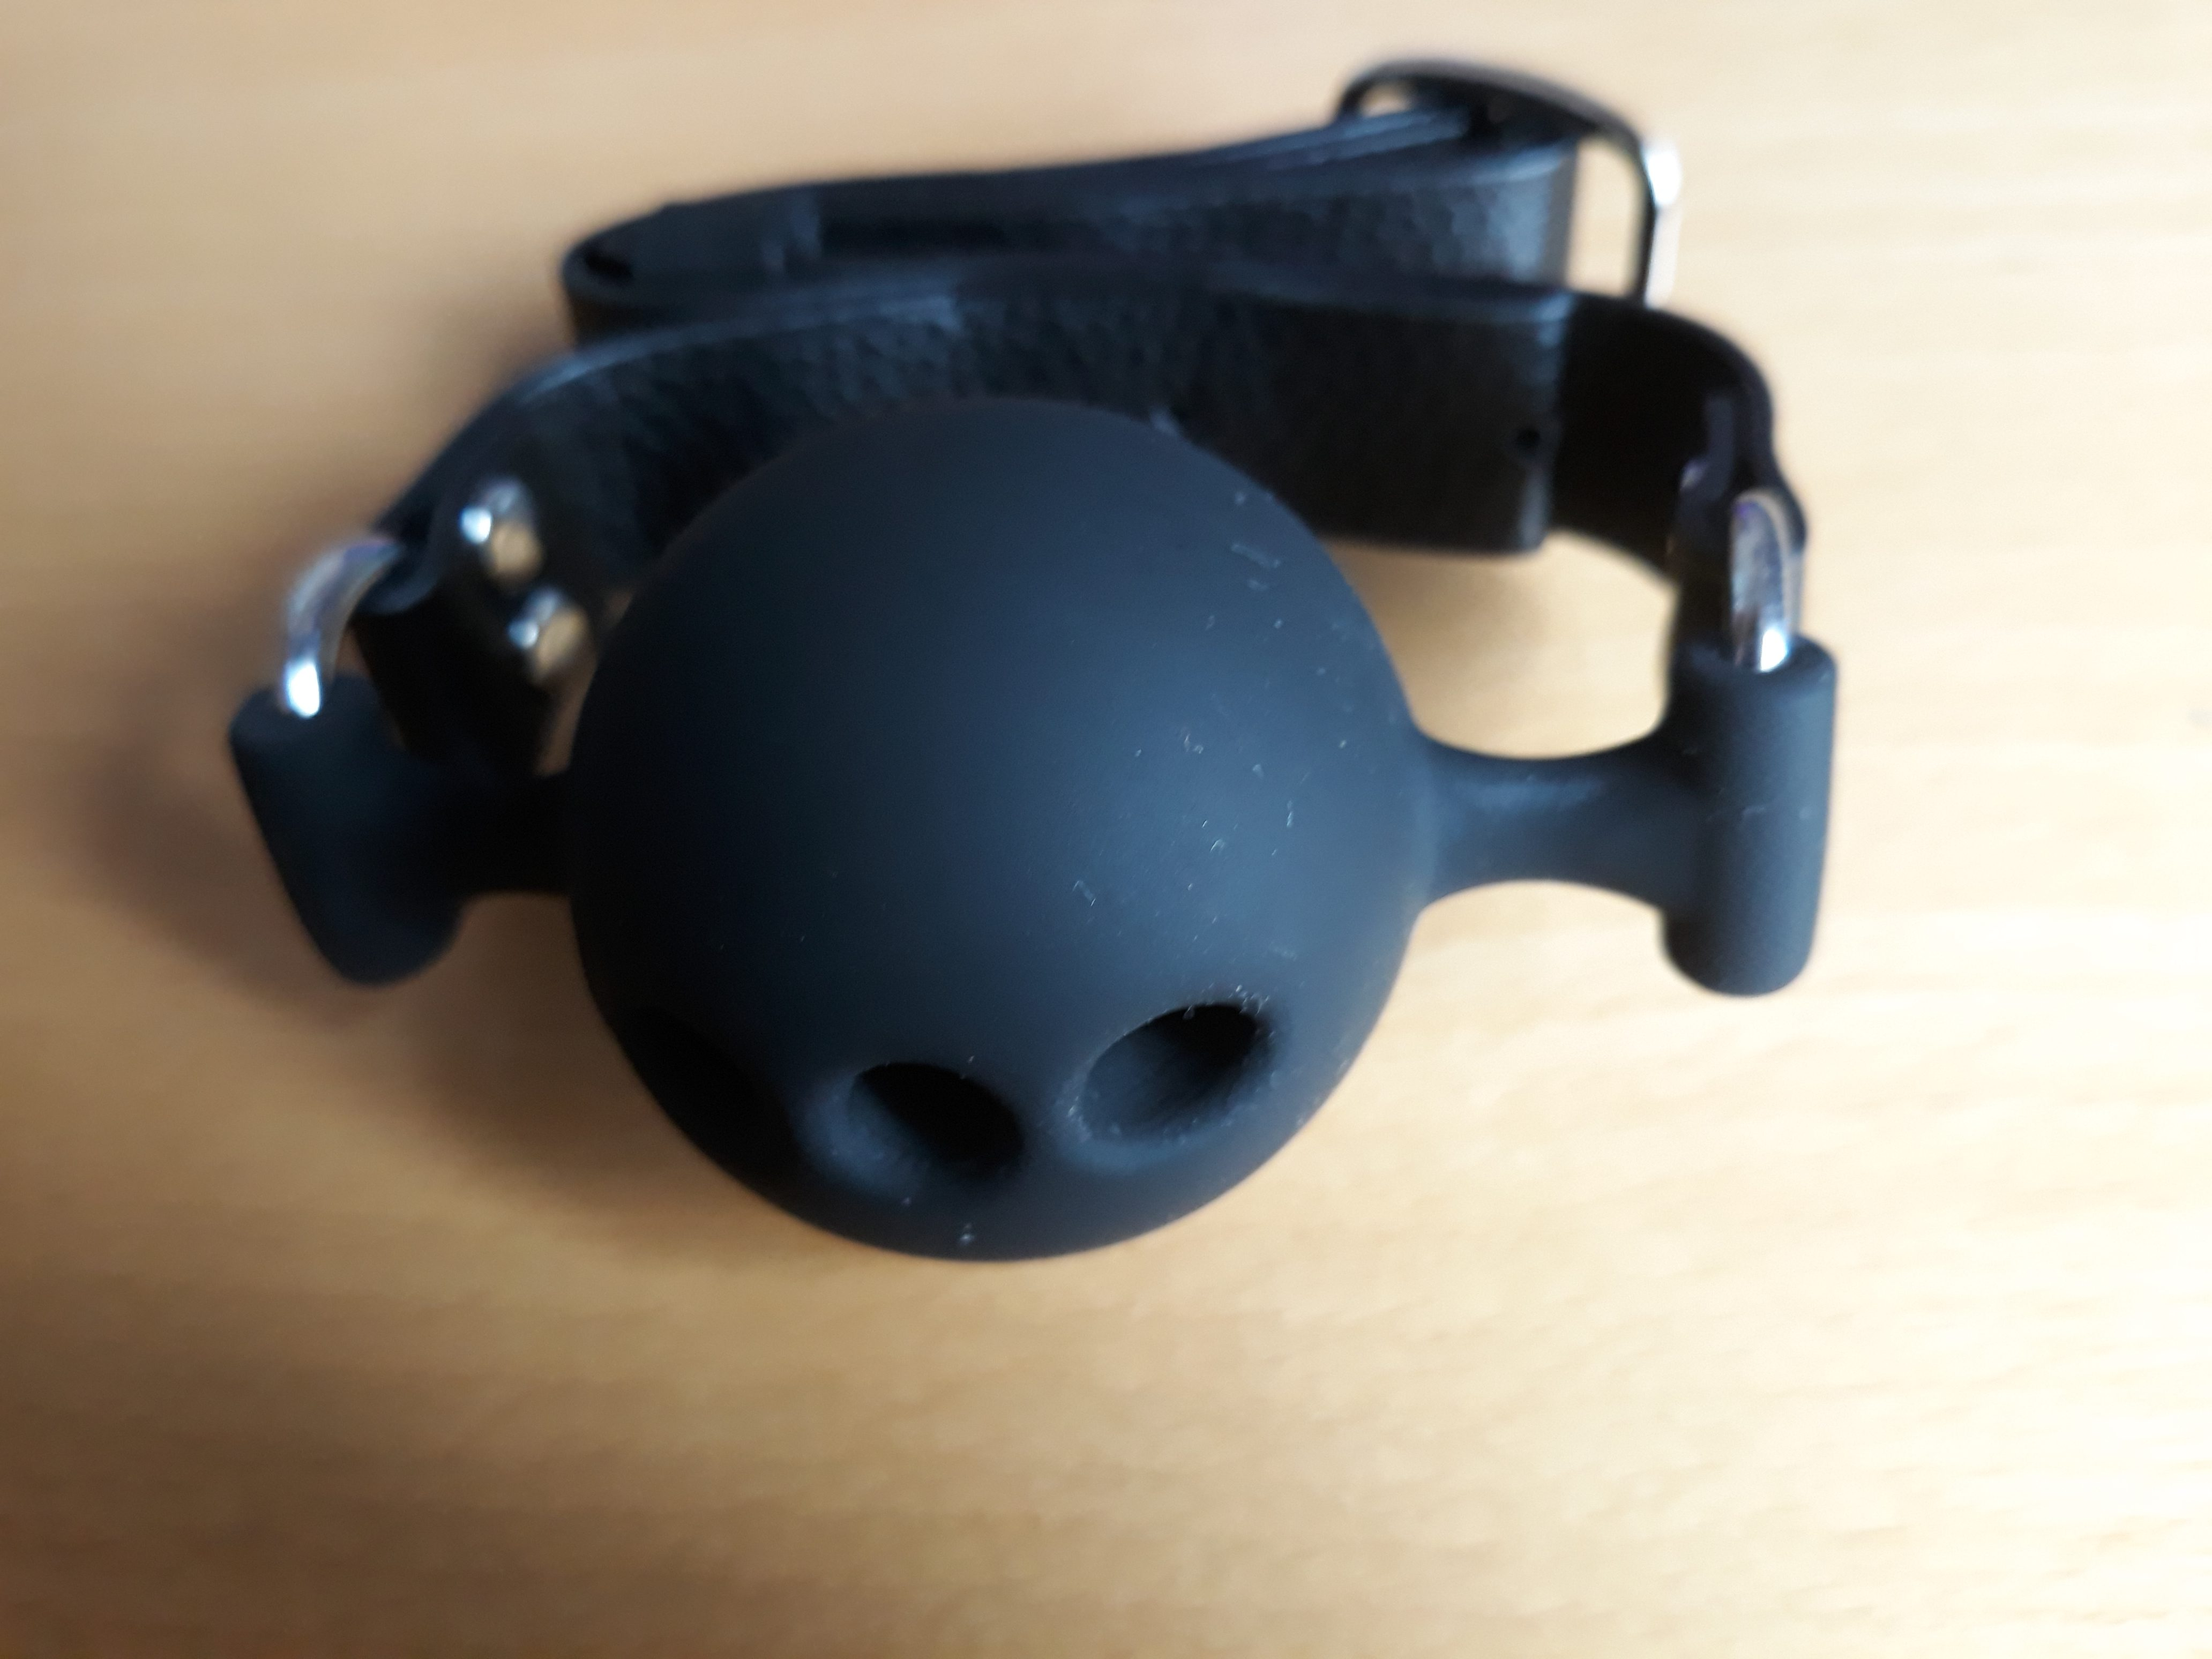 A black ball gag. For a post about the Take Control bondage kit.